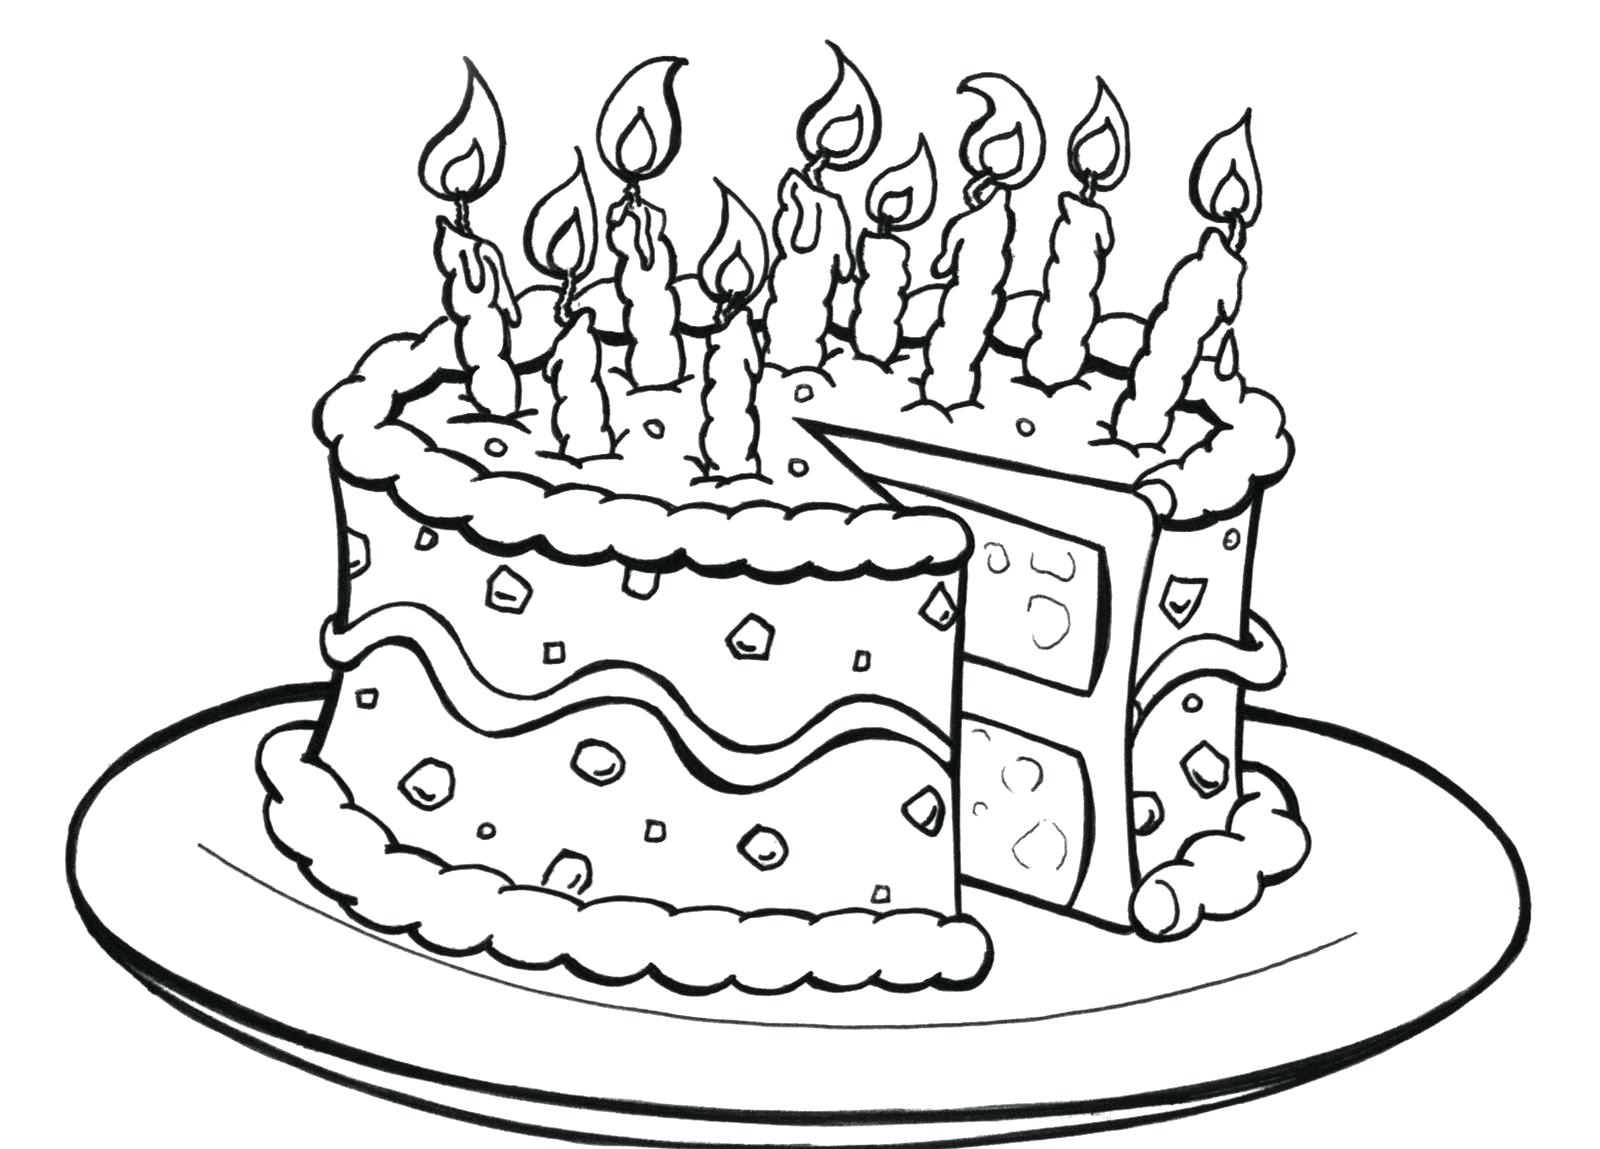 1600x1149 Birthday Cakes Images Black White Birthday Cake Coloring Page